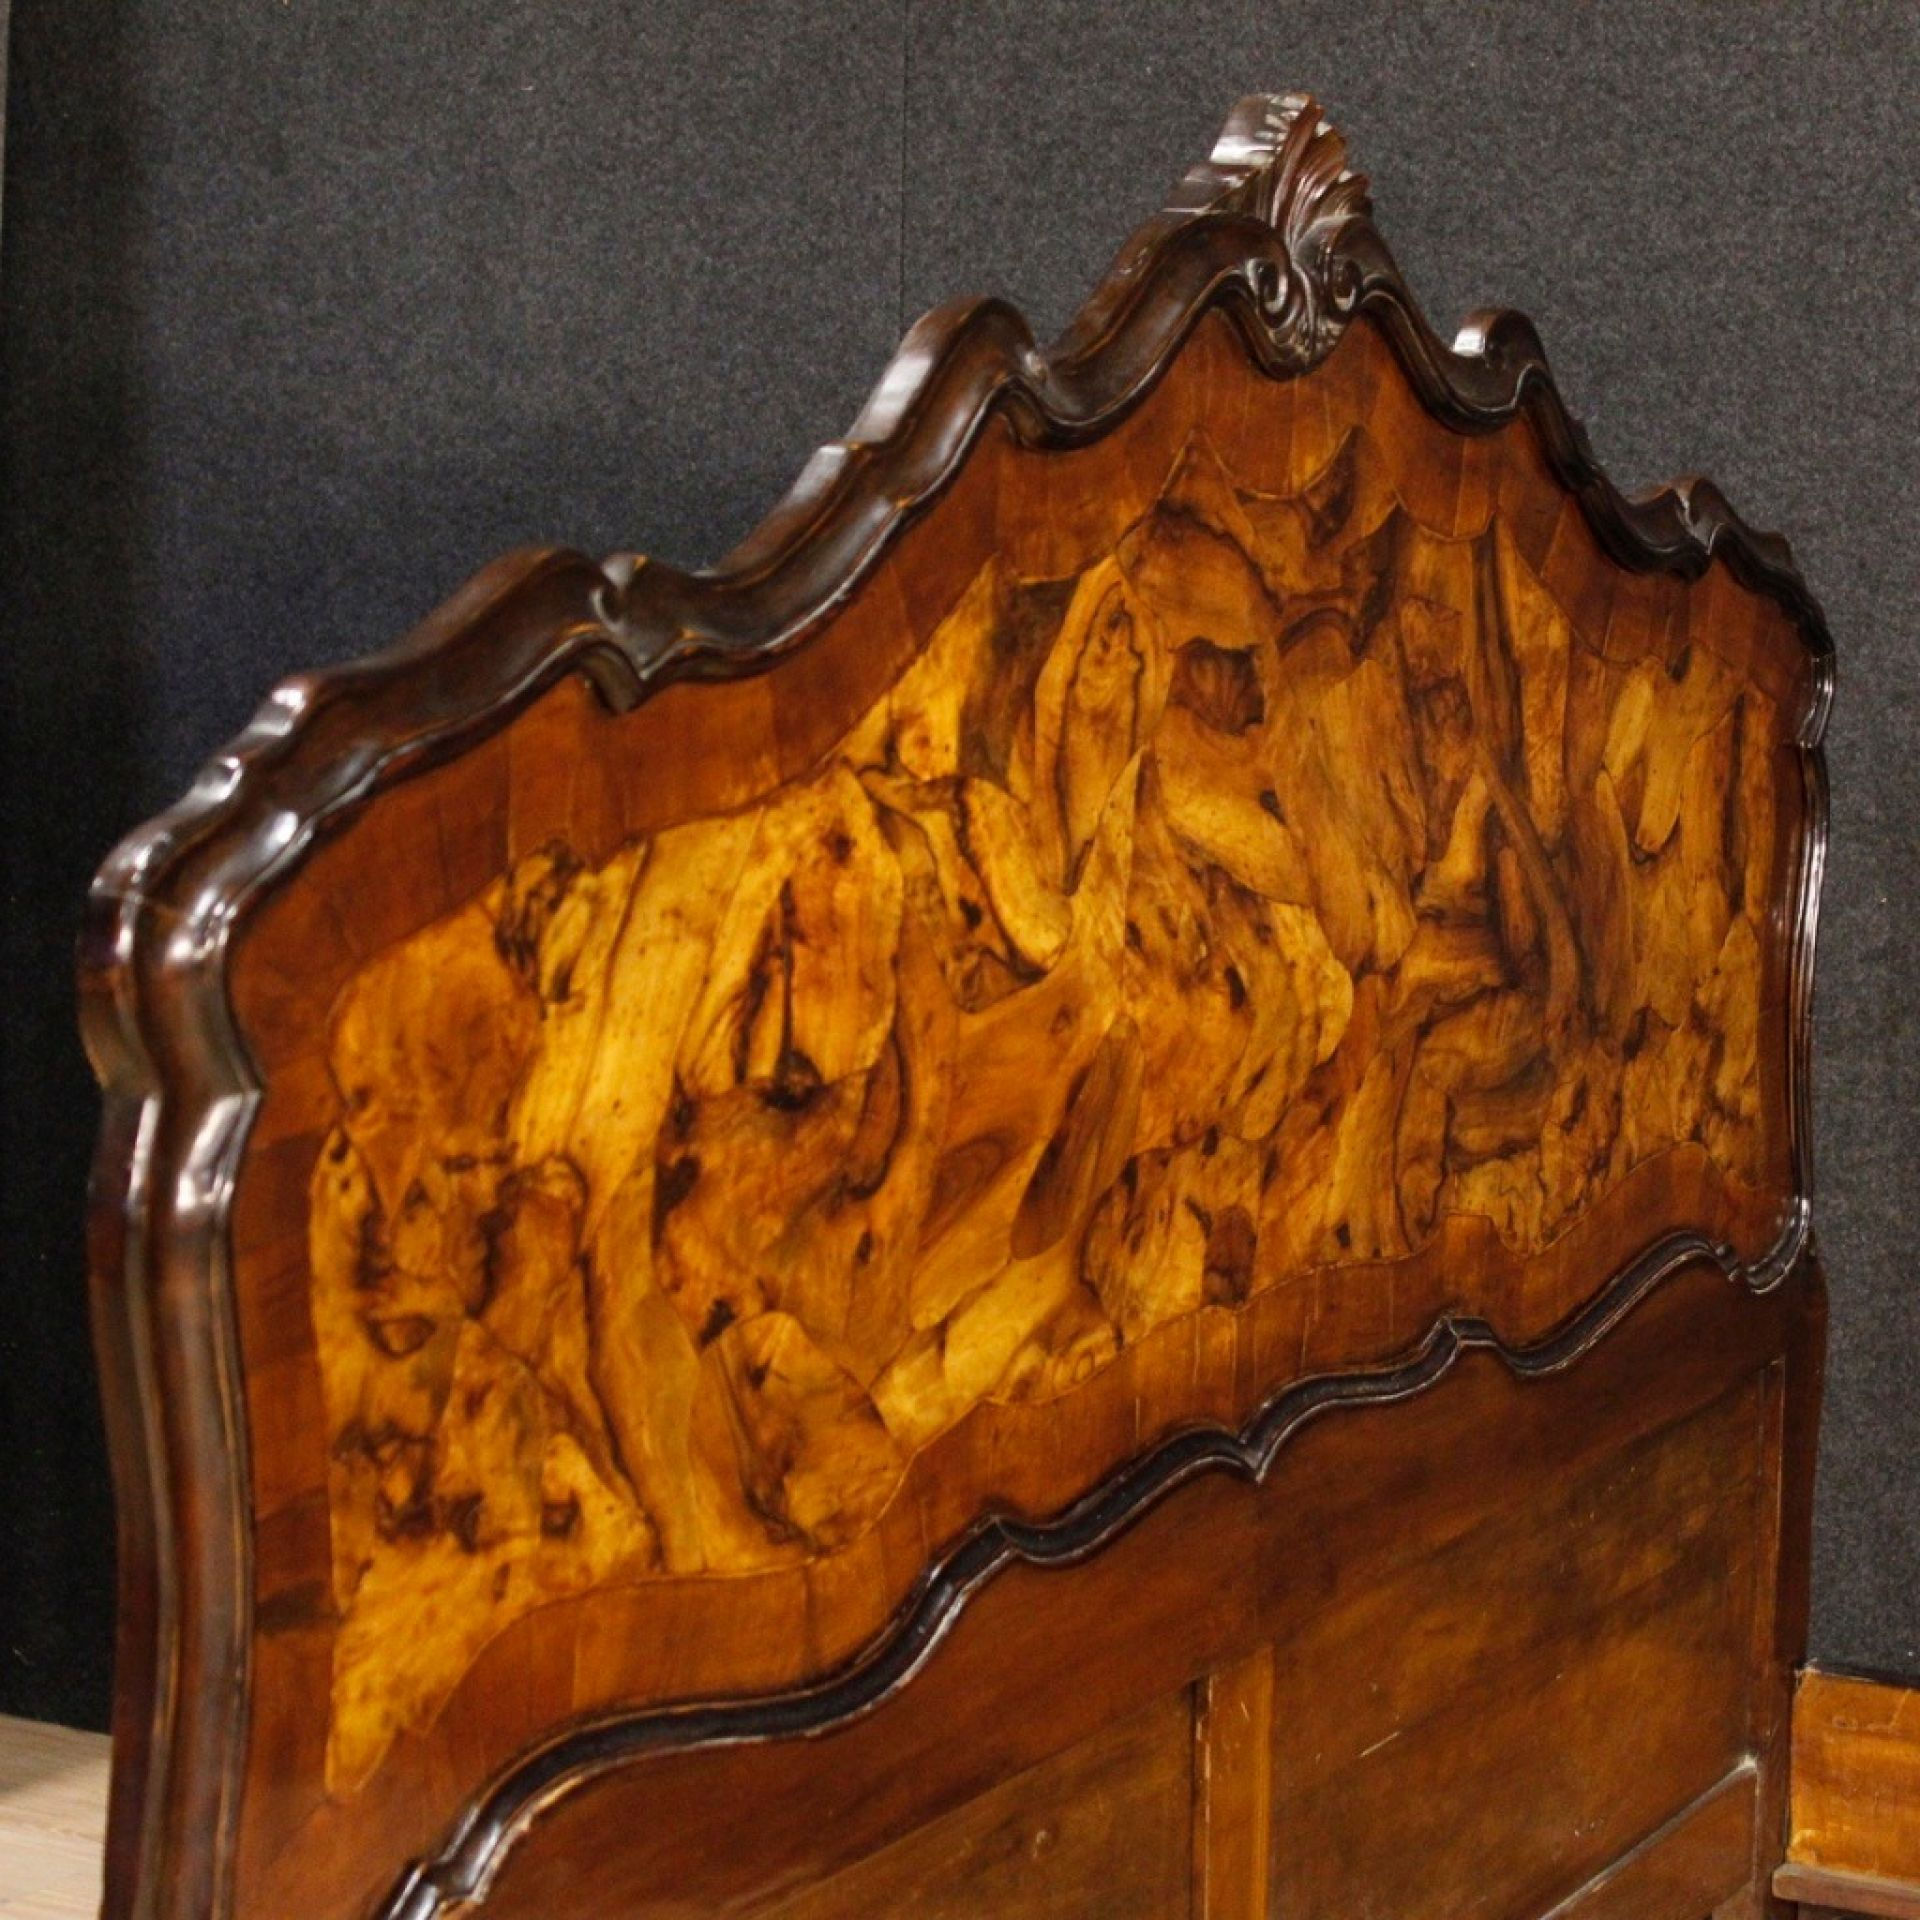 Venetian Double Bed In Walnut And Burl Wood In Louis XV Style 20th Century